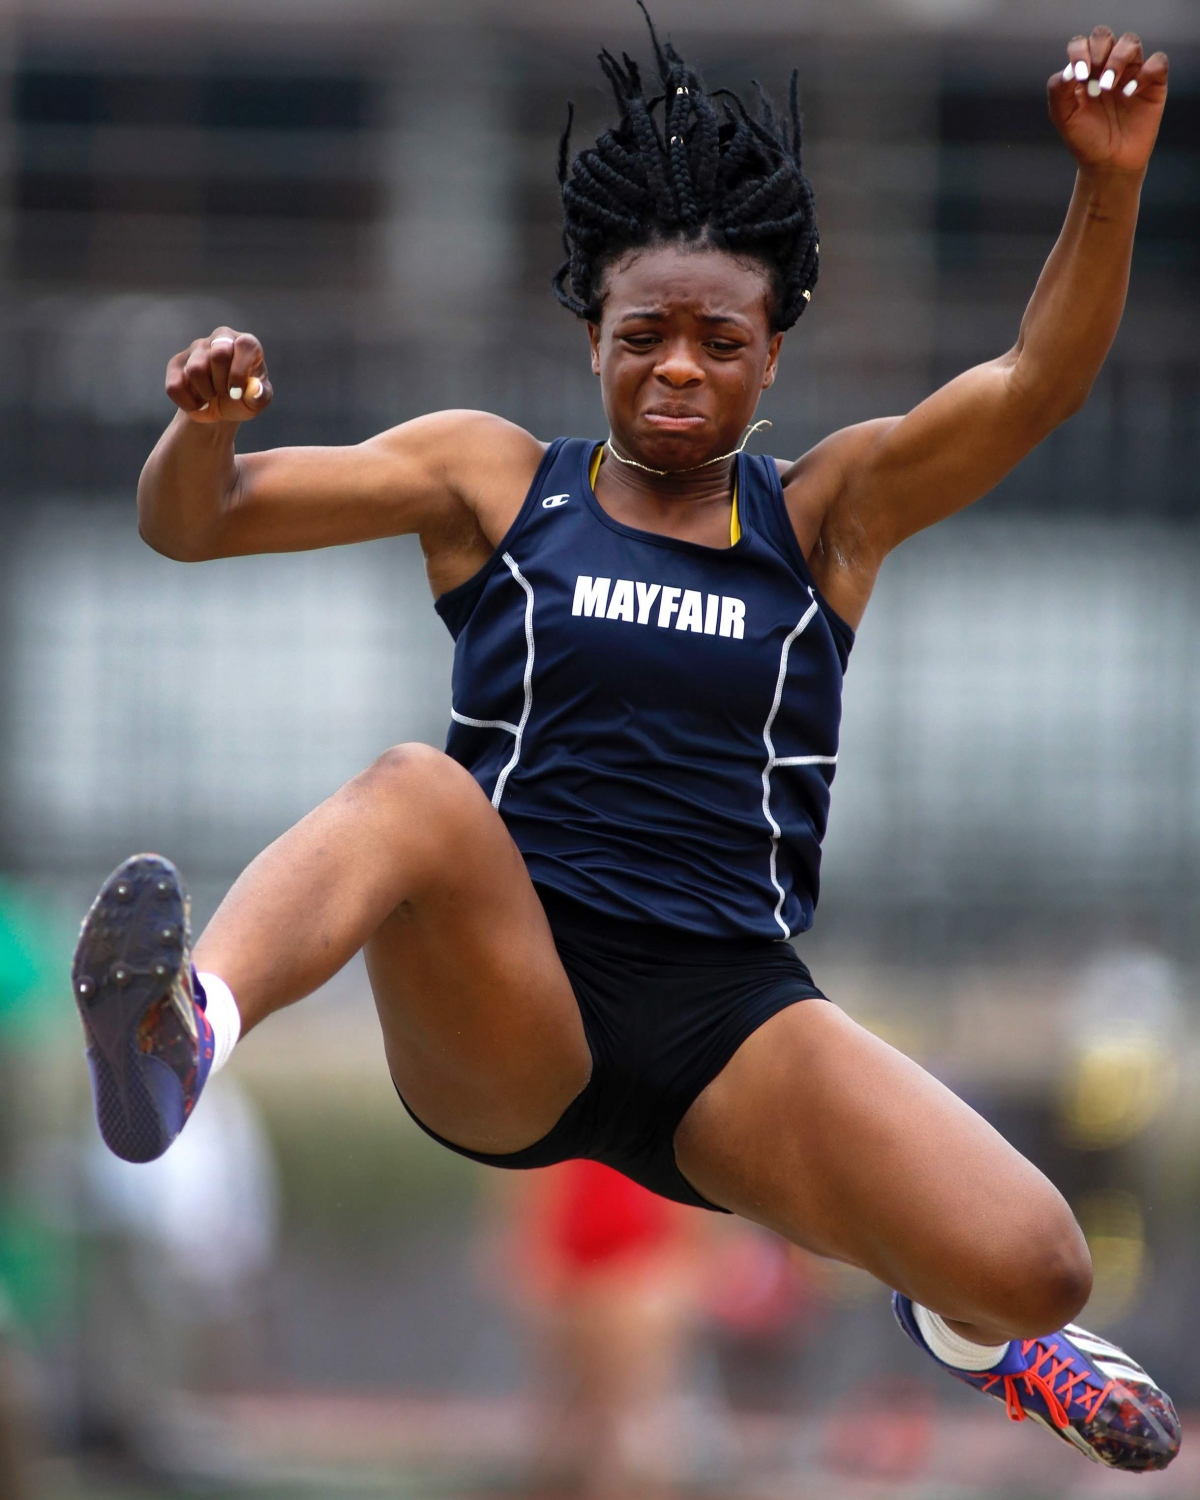 Mayfair's Joy Umeh braces for her landing in the division 3 long jump at the CIF-Southern Section Divisional Finals on May 19, 2018. ©2018 Katharine Lotze